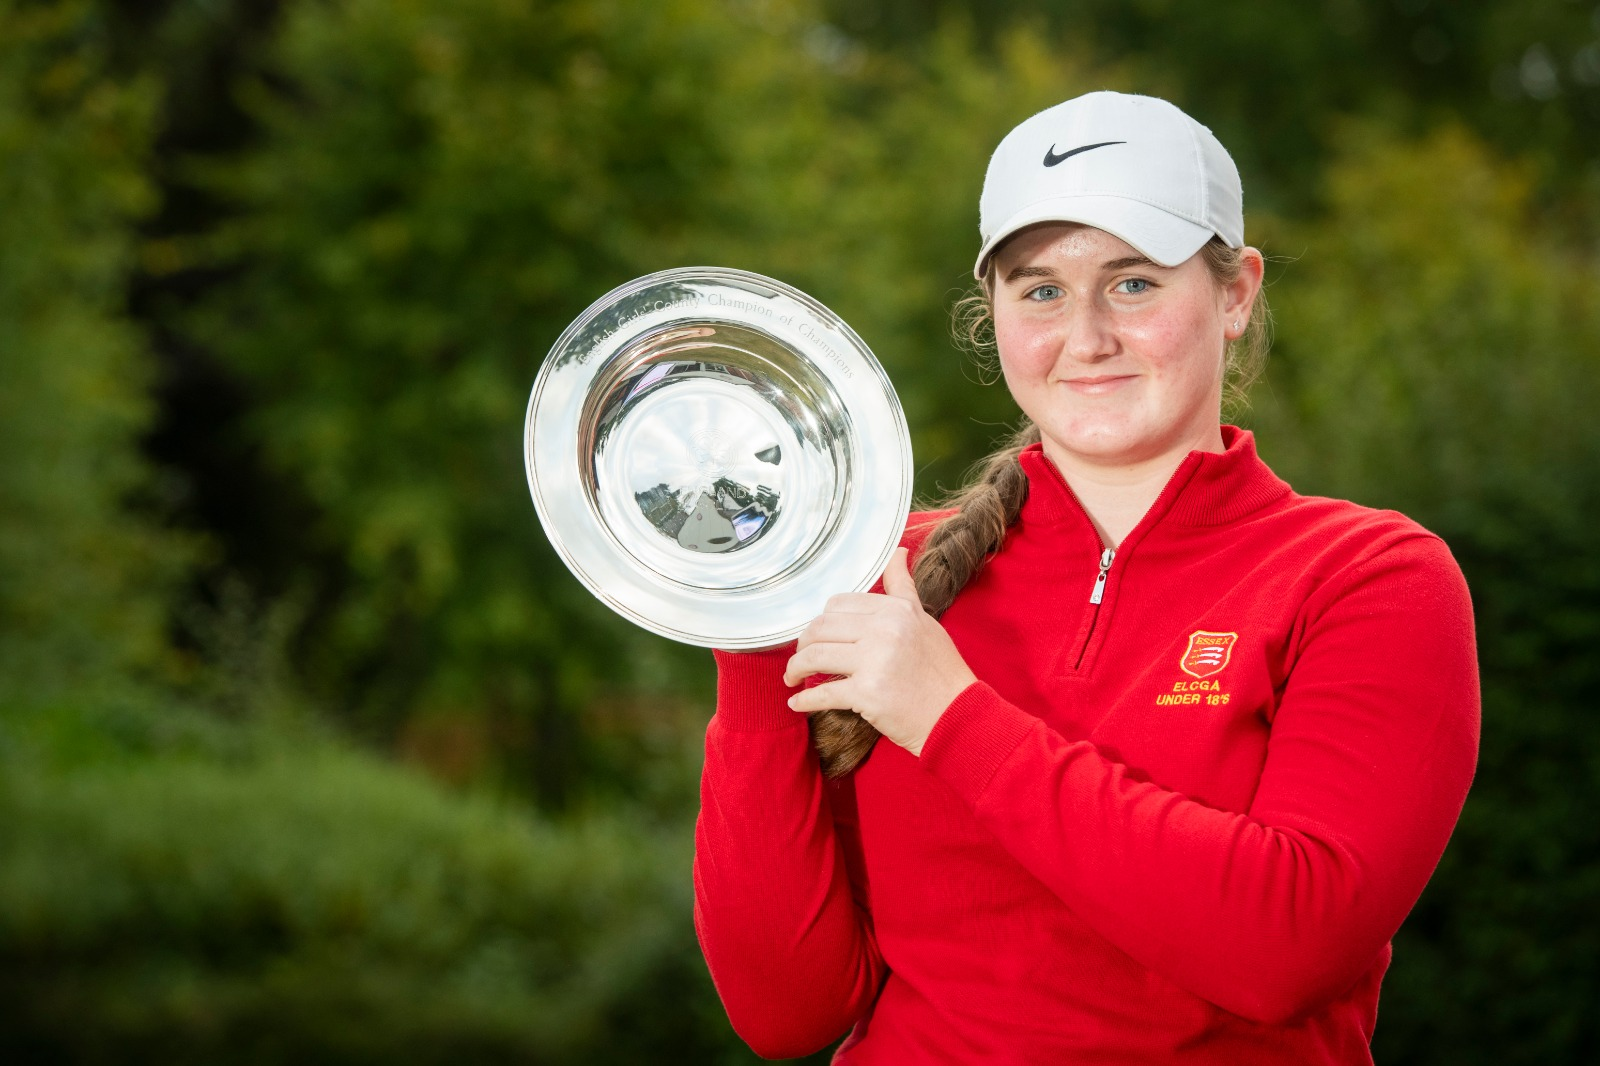 Amy Knotts crowned Girls' County Champion of Champions